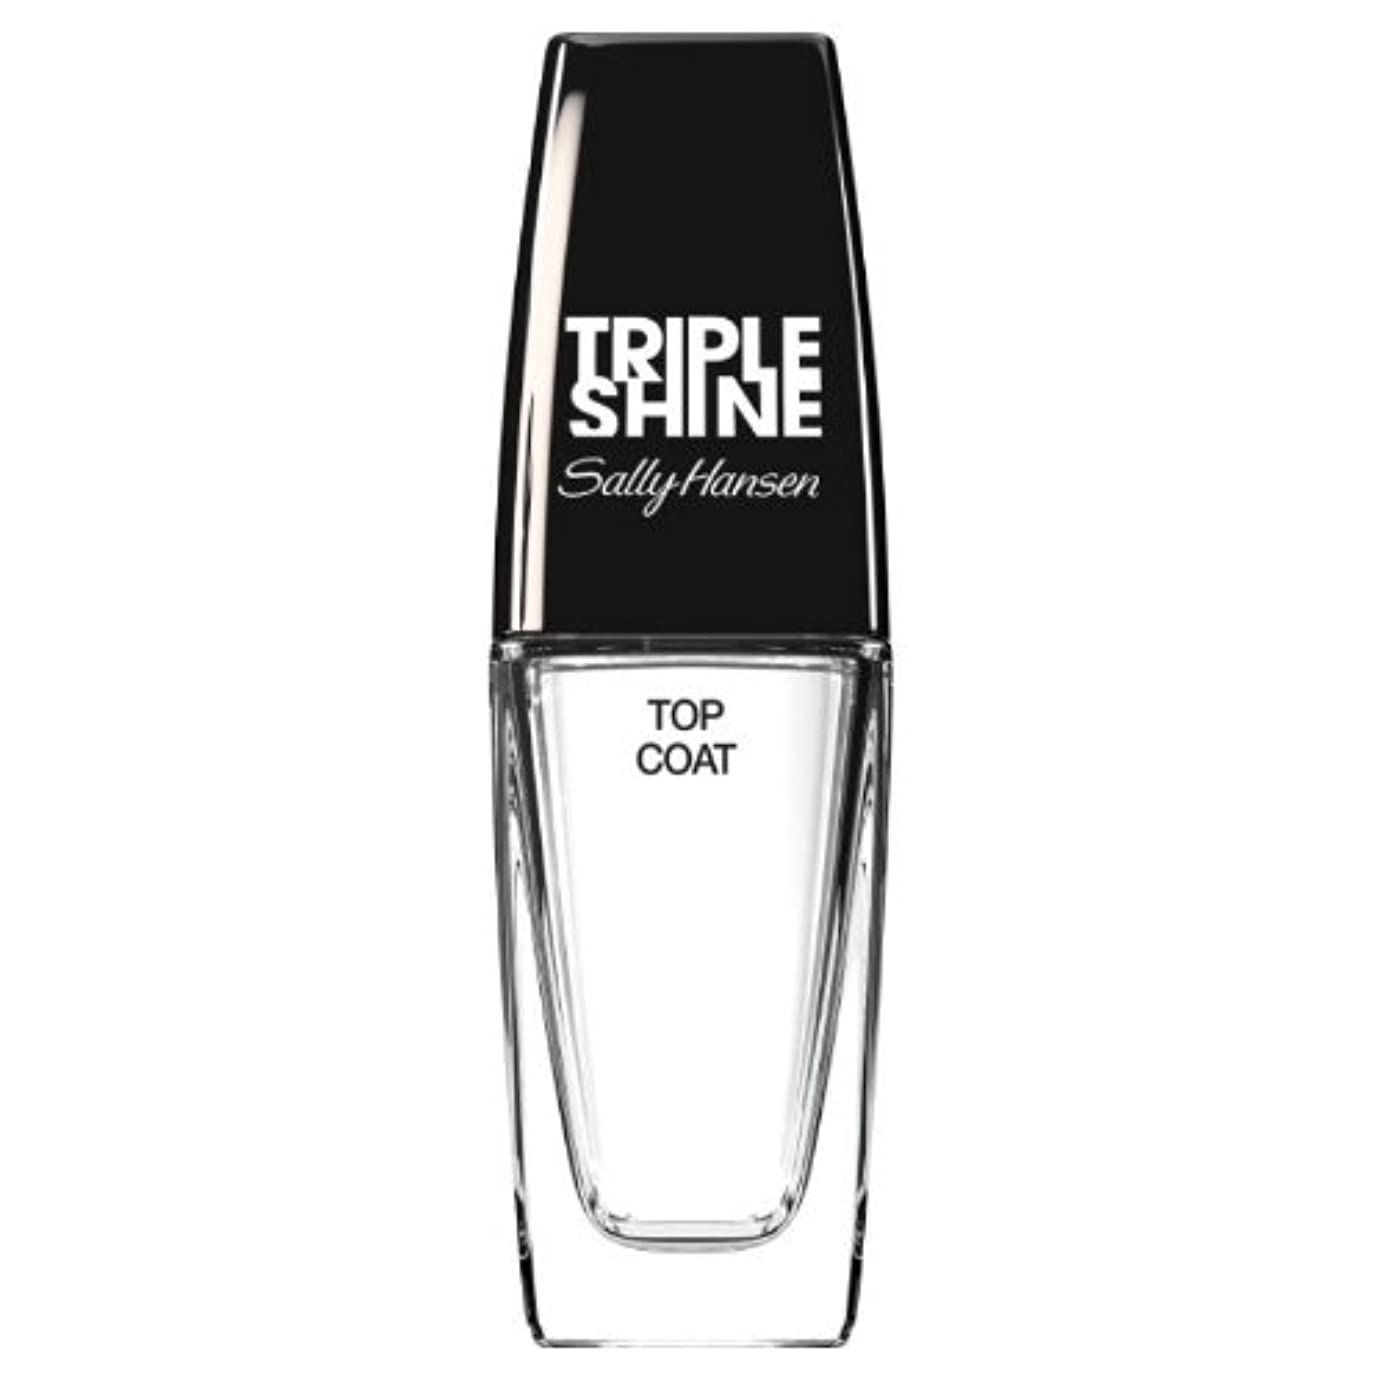 脚本石化する帰る(3 Pack) SALLY HANSEN Triple Shine Top Coat - Triple Shine Top Coat (並行輸入品)